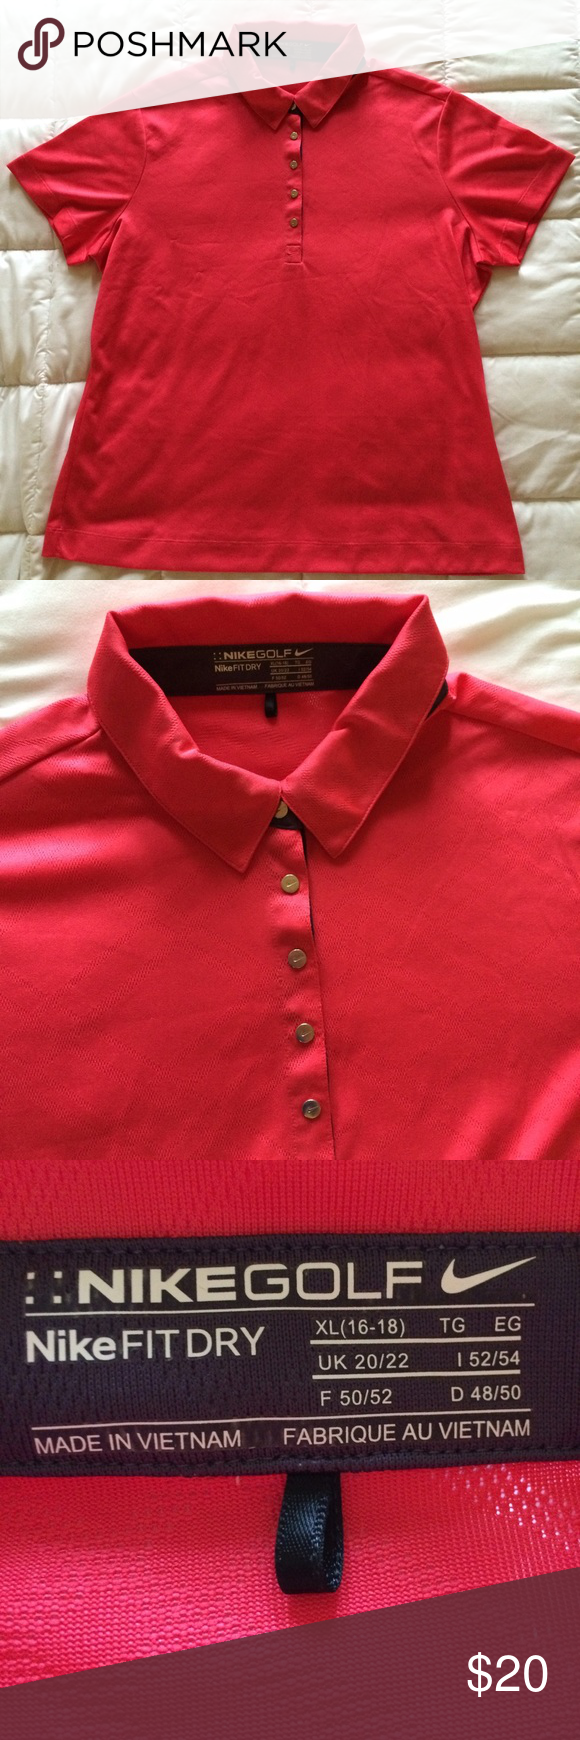 NikeGOLF/fit dry LADIES GOLF SHIRT Brand new, Odd pink color, NIKE GOLF NIKE FITDRY ladies golf shirt. This is brand new NEVER WORN selling for my mother who buys these shirts yet takes the tags off and never wears.          ✔️if you like this CHECK THE OTHERS THE SAME IN MY CLOSET Nike  Tops